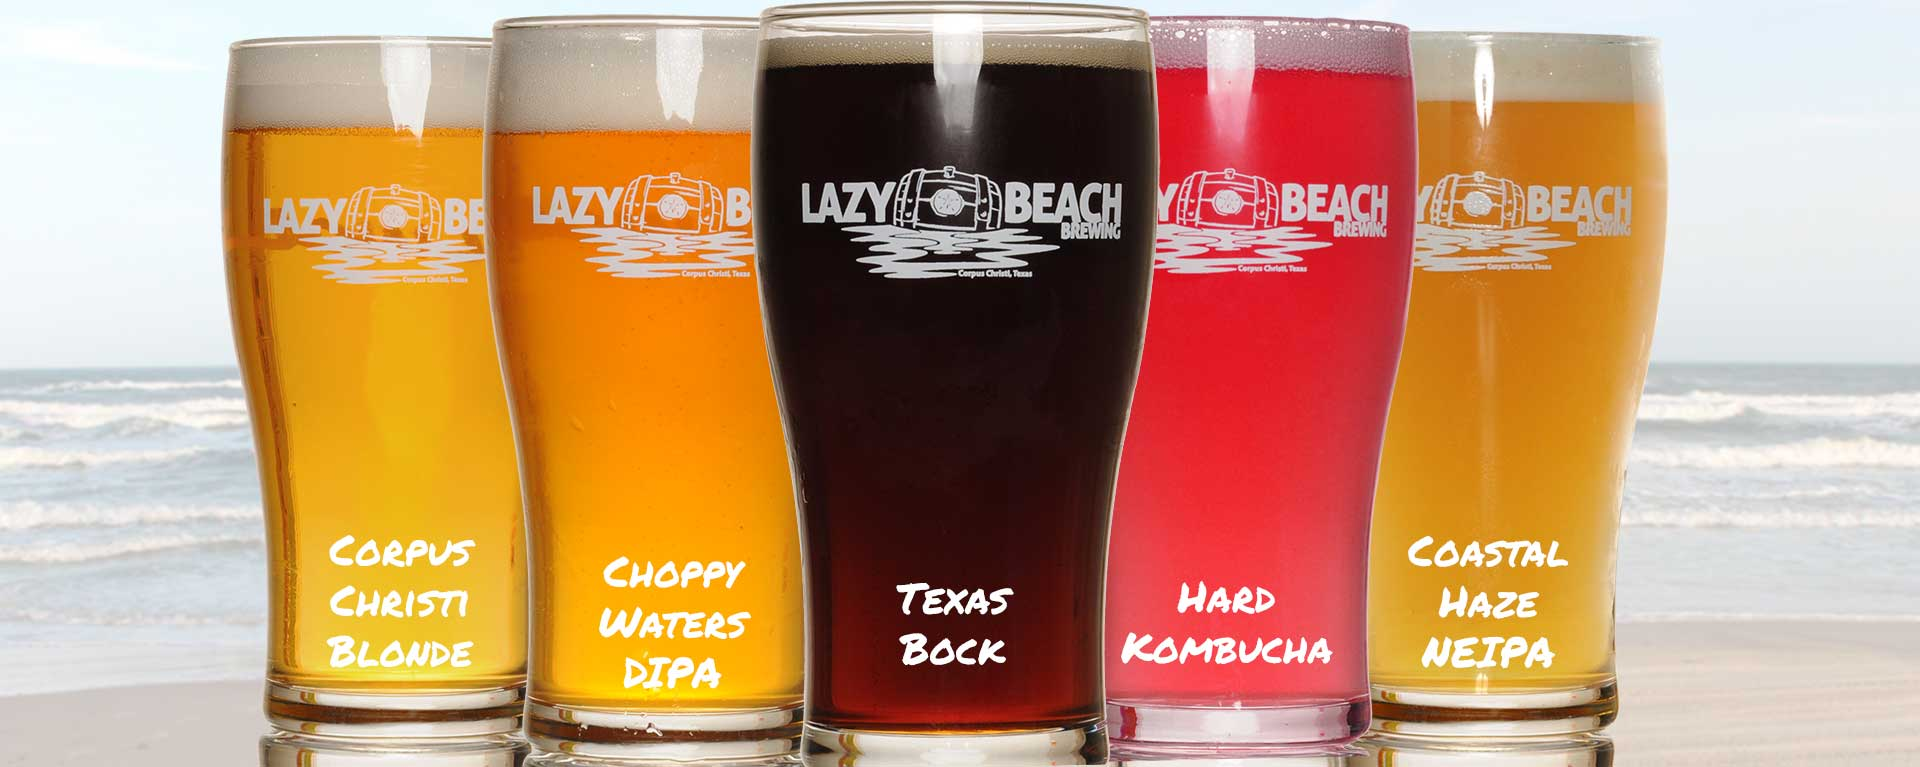 Lazy Beach Brewery